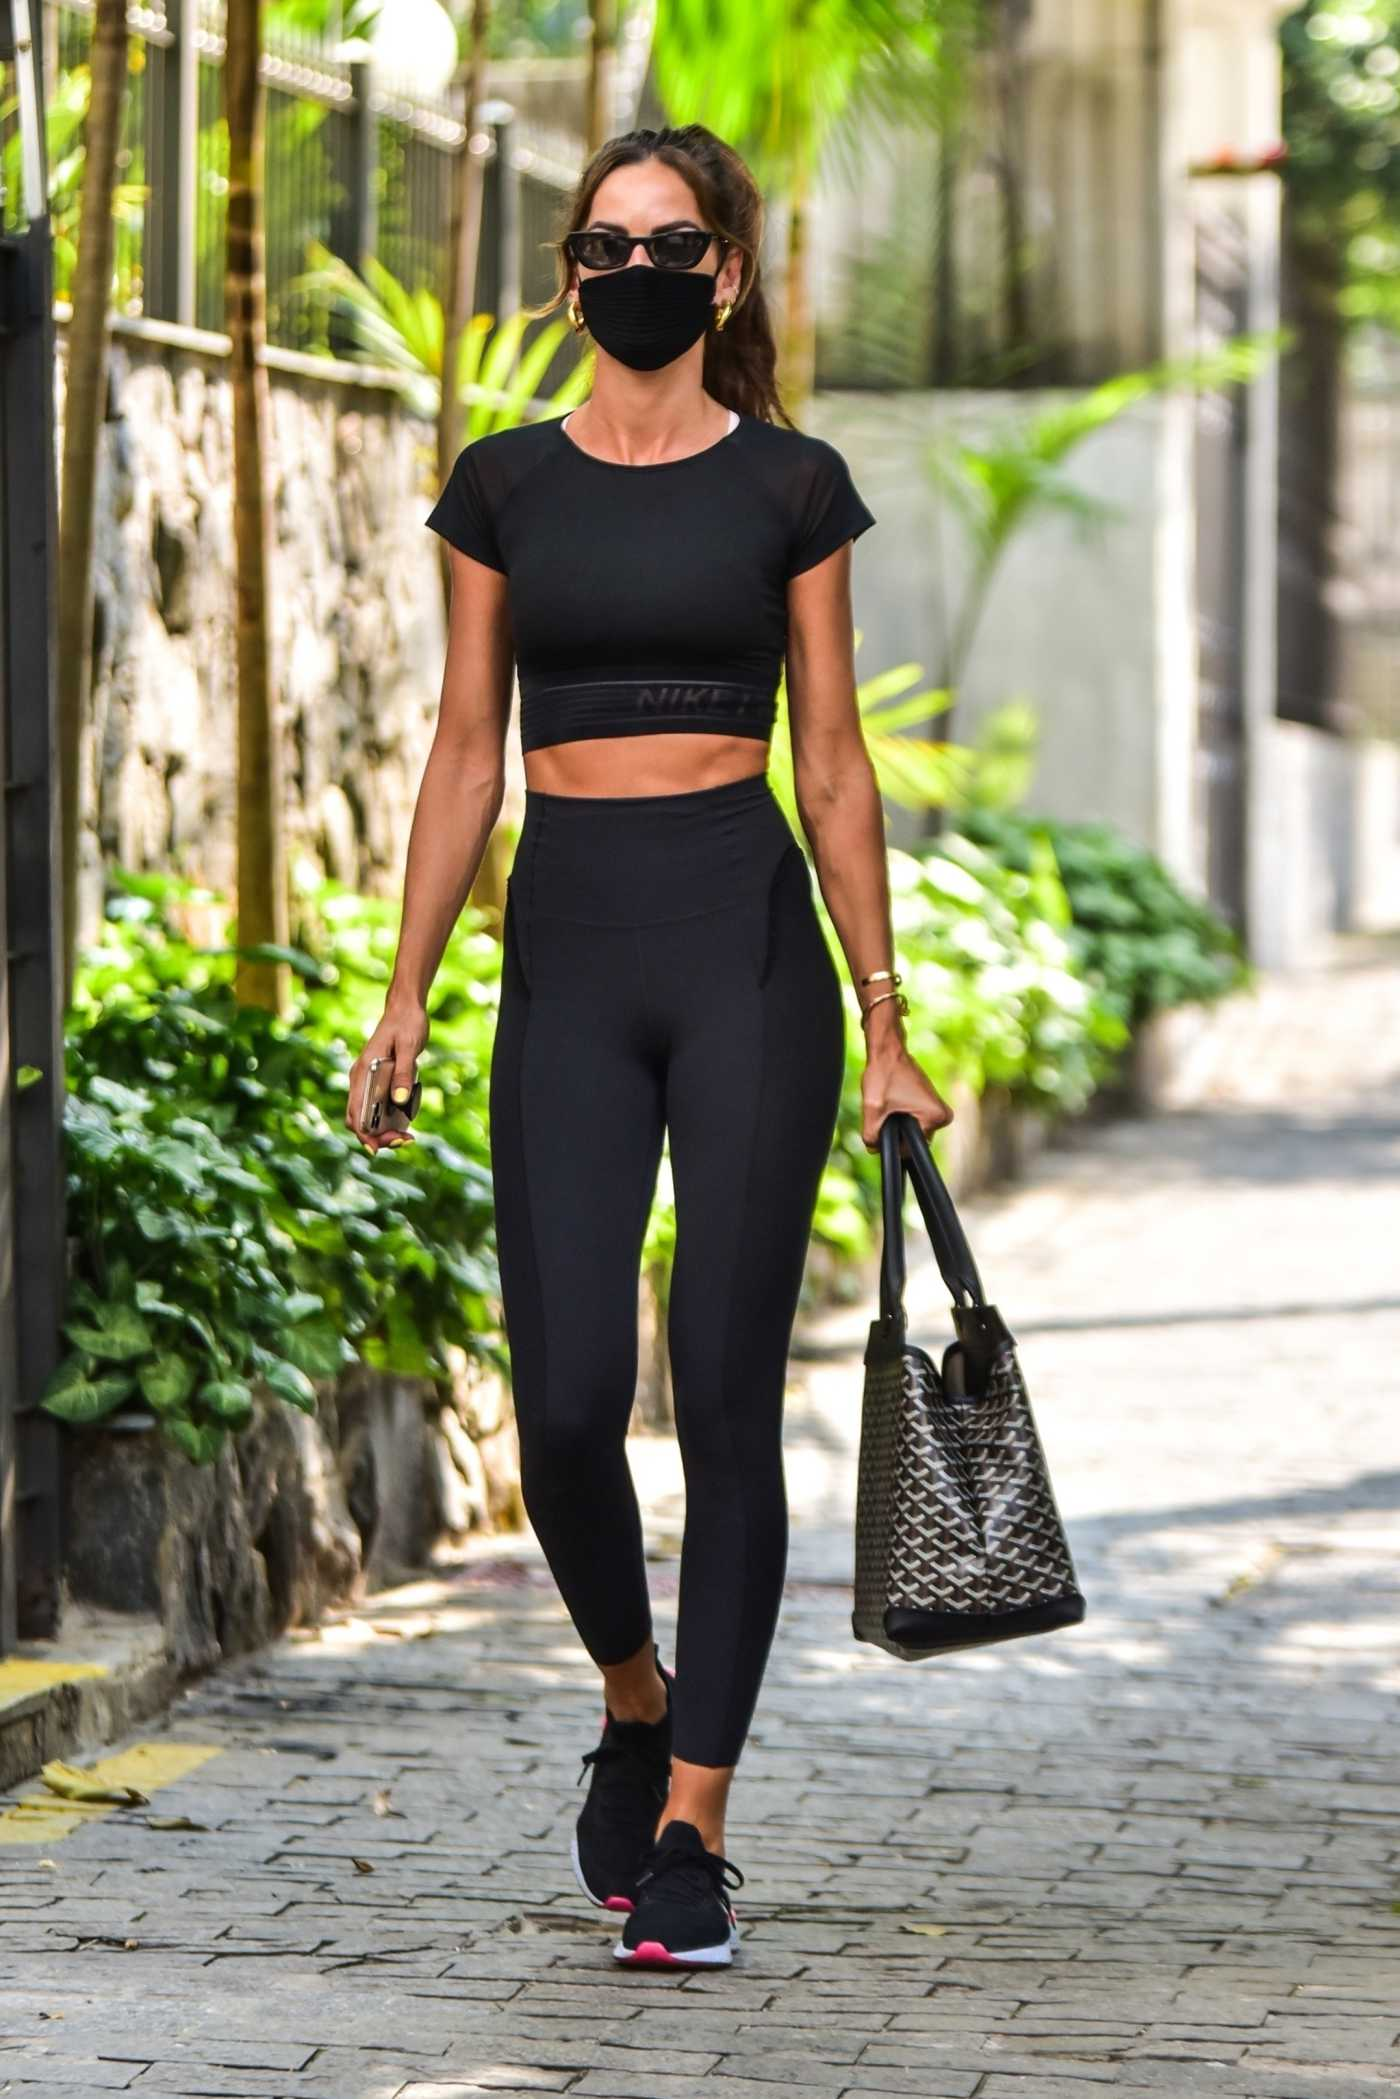 Izabel Goulart in a Black Leggings Was Seen Out in Sao Paulo 10/14/2020